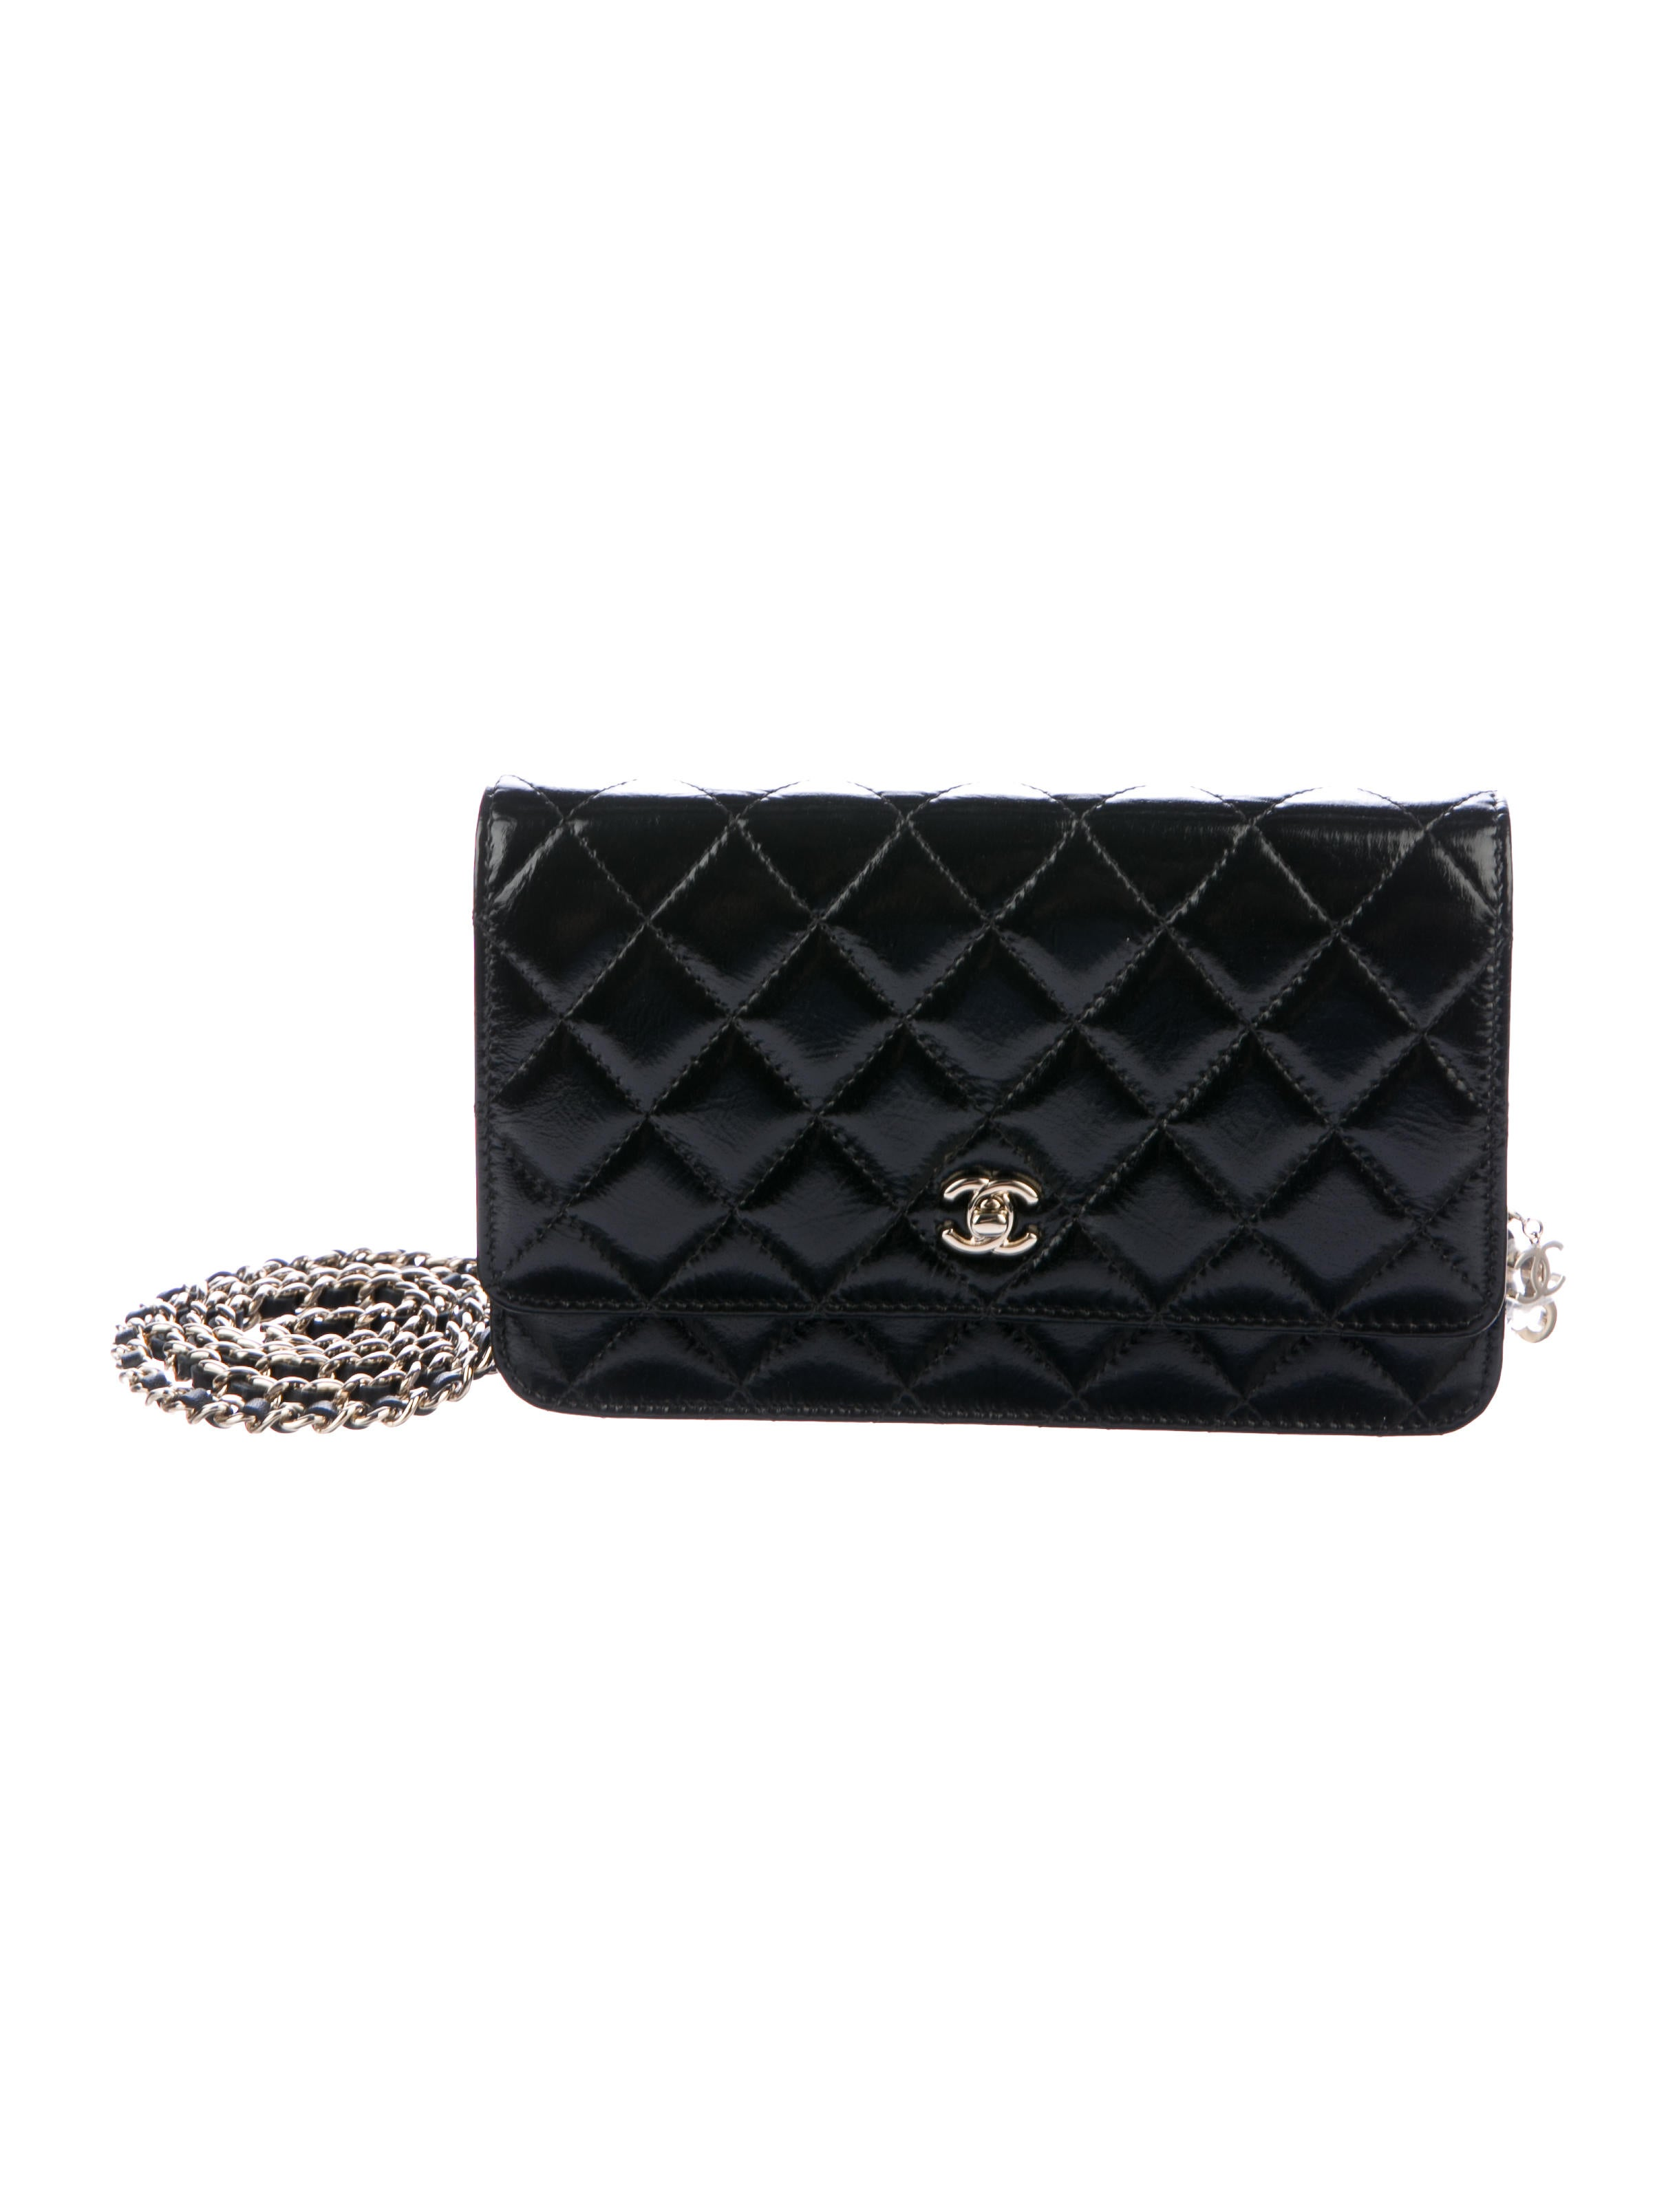 b55ff06426f2 Chanel Evening Bags | The RealReal